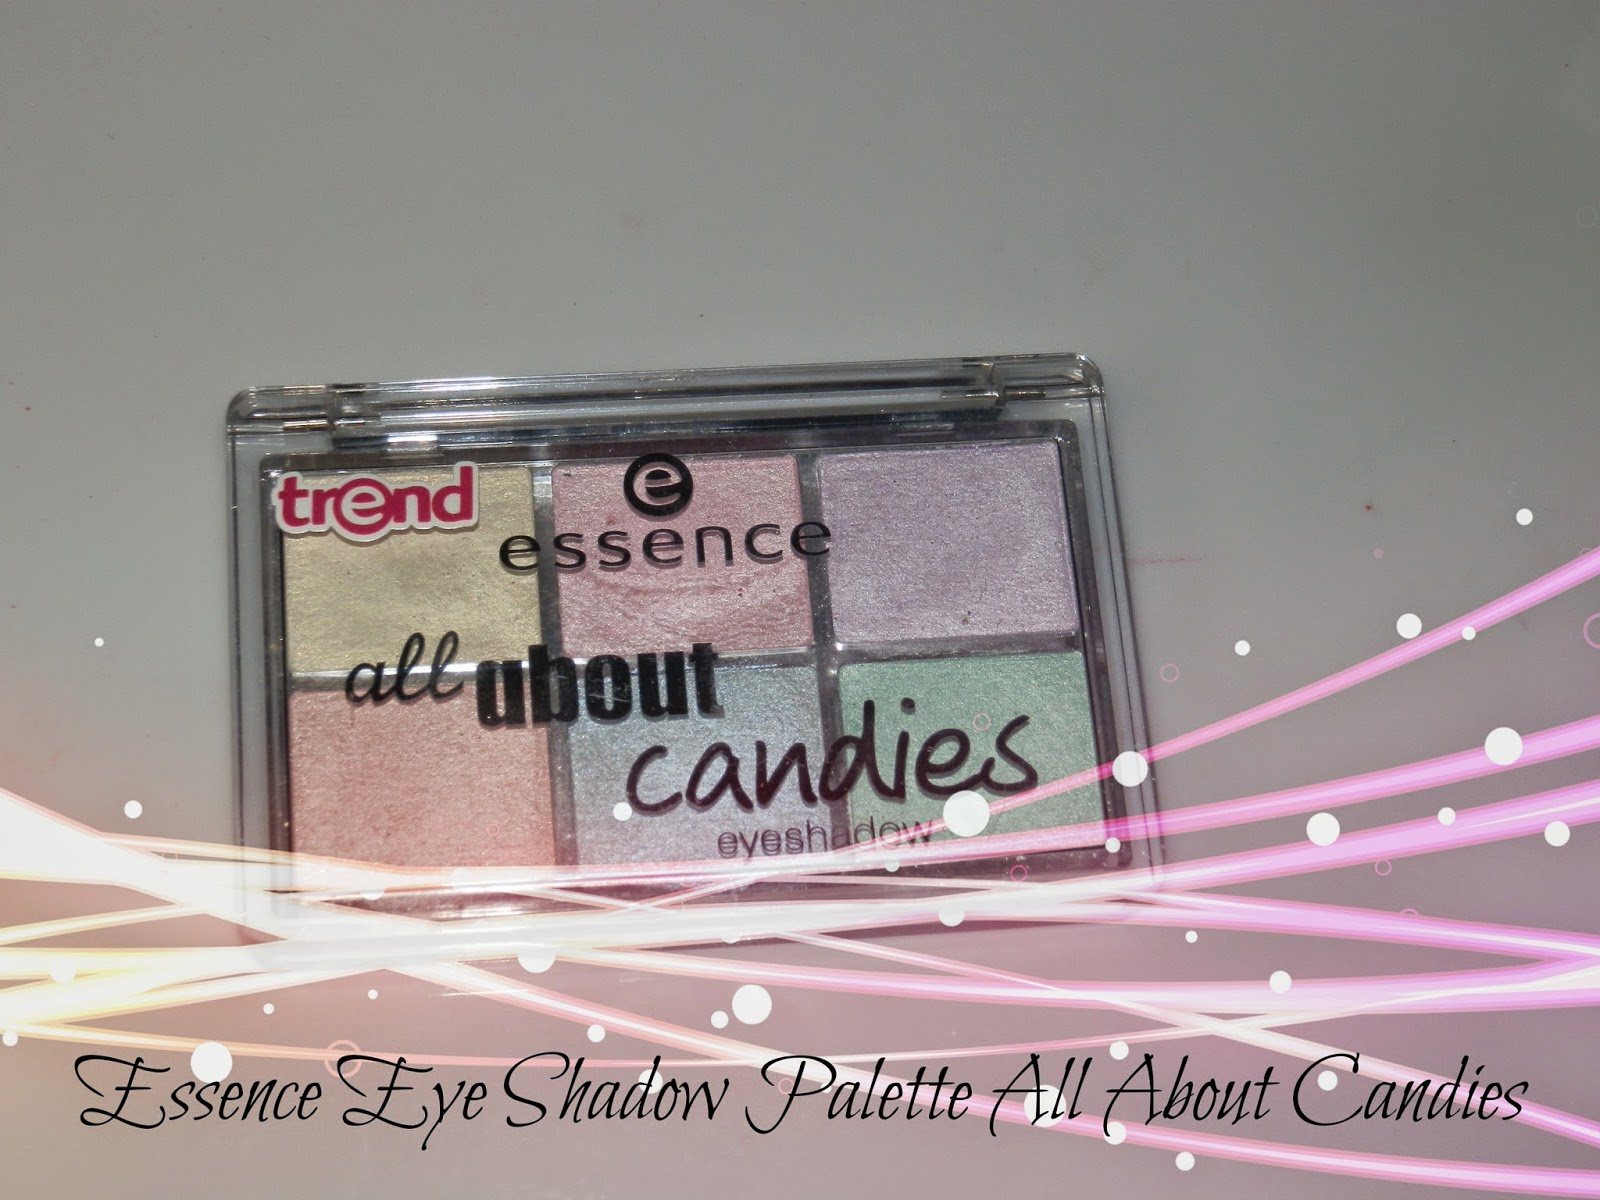 Essence Eye Shadow Palette All About Candies